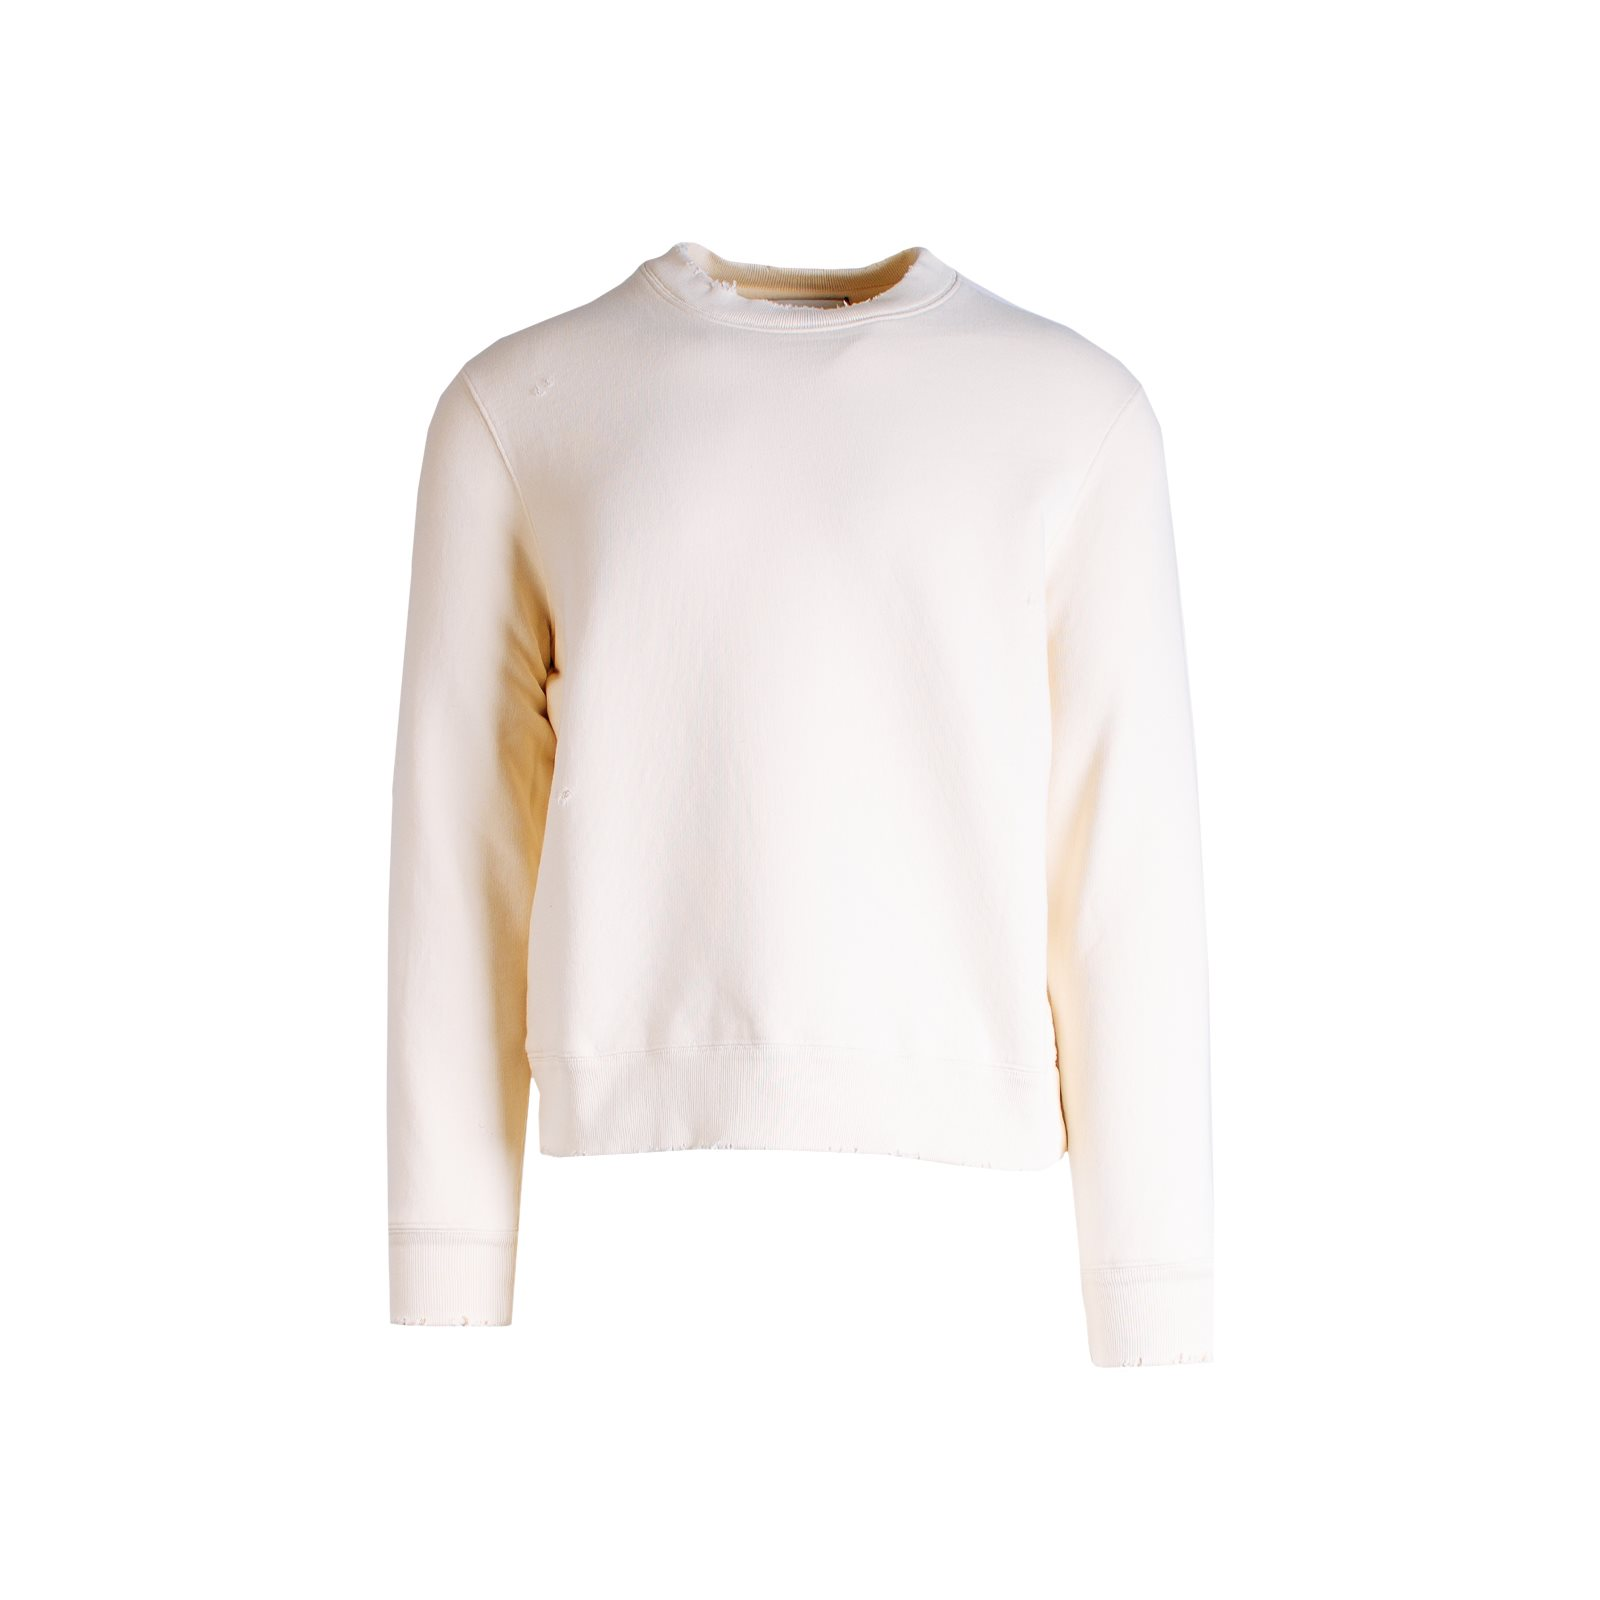 Lanvin Paris Sweater